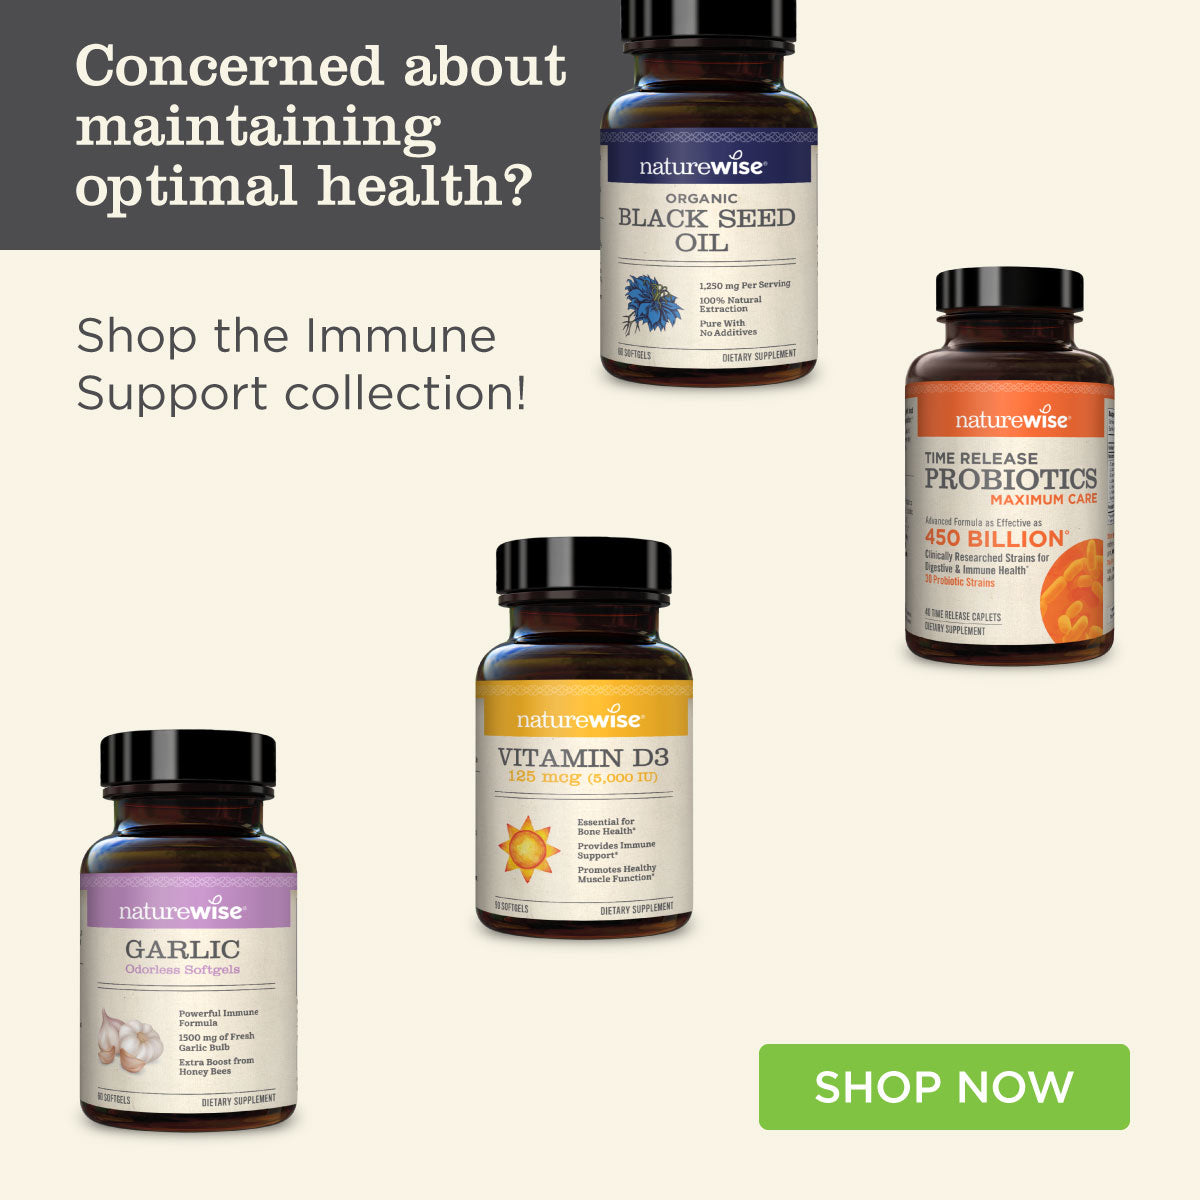 Get 20% off the Immune Support Collection